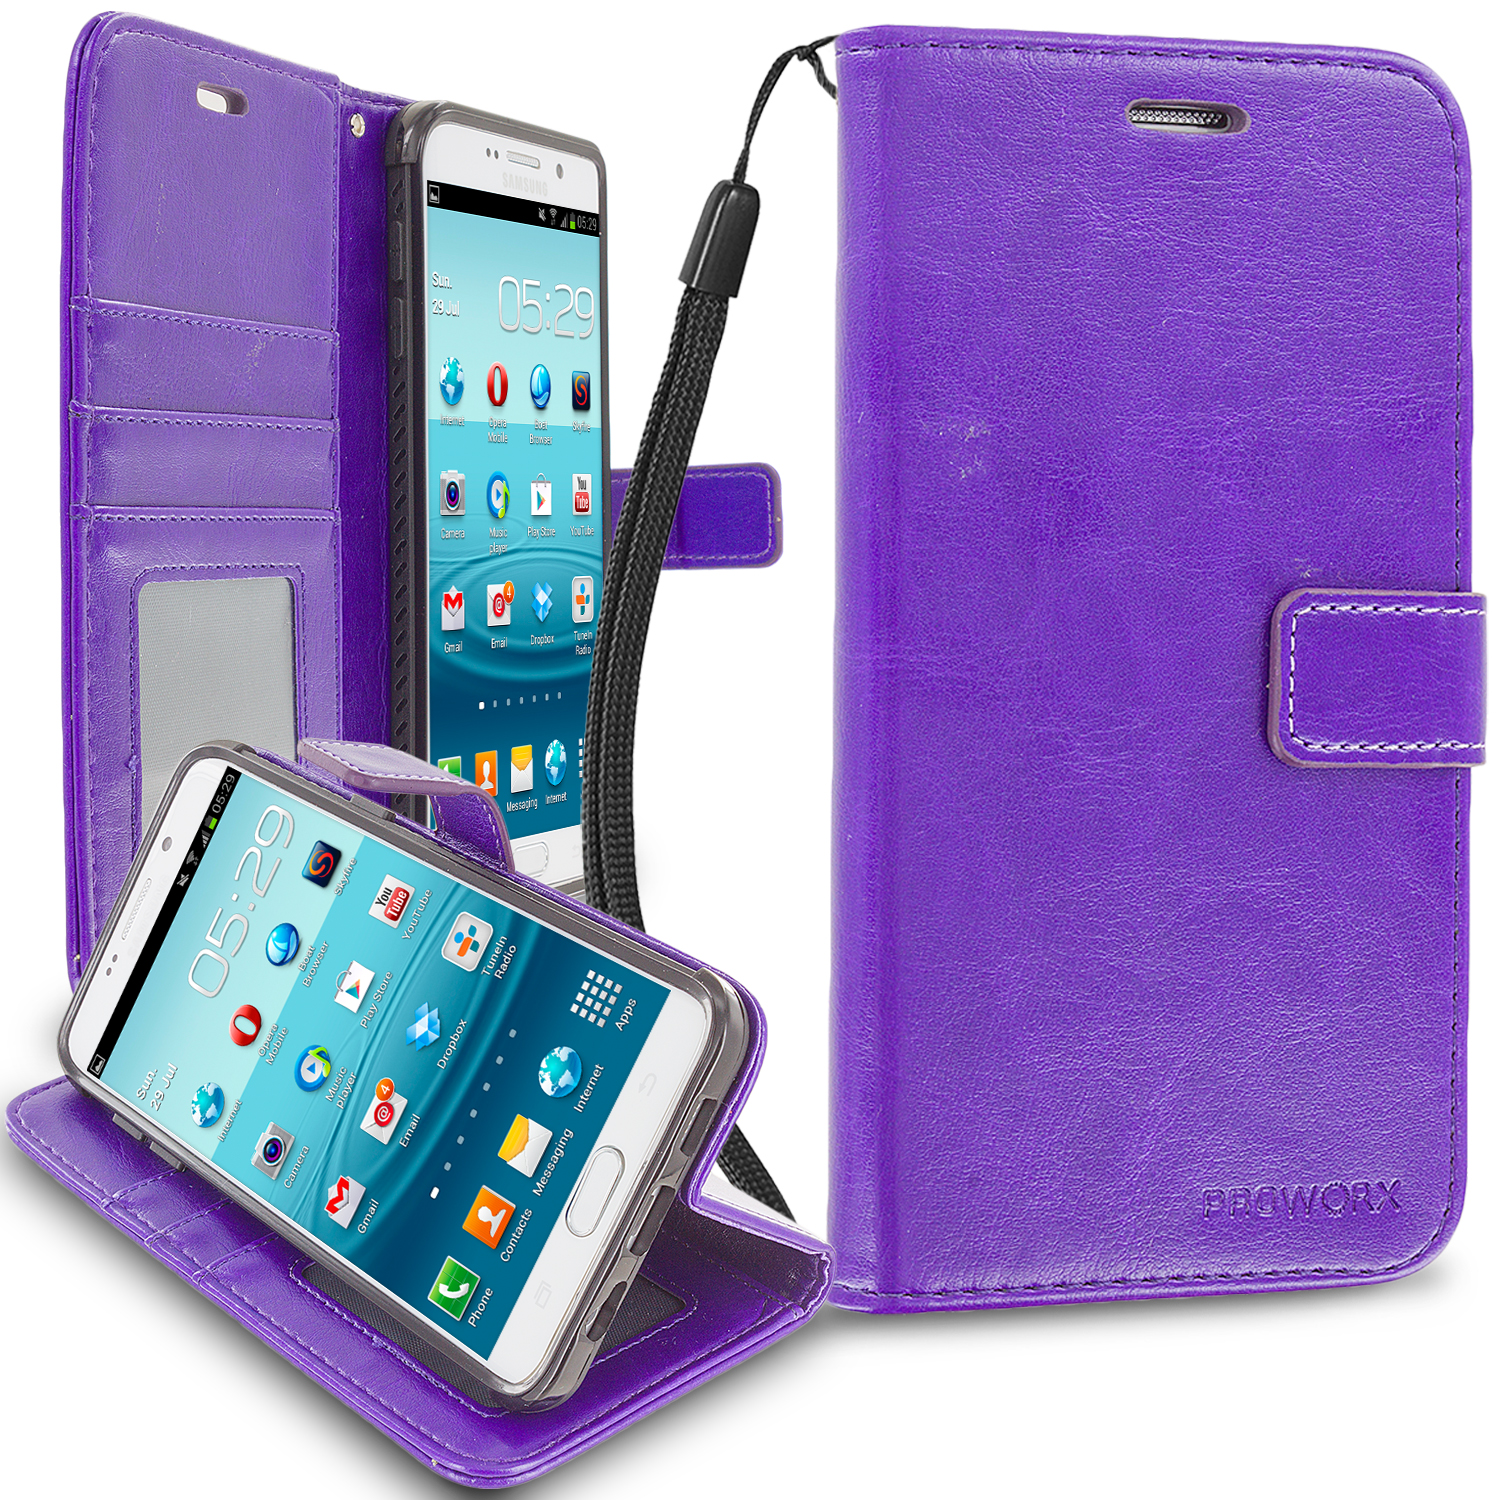 Samsung Galaxy S6 Edge Plus + Purple ProWorx Wallet Case Luxury PU Leather Case Cover With Card Slots & Stand